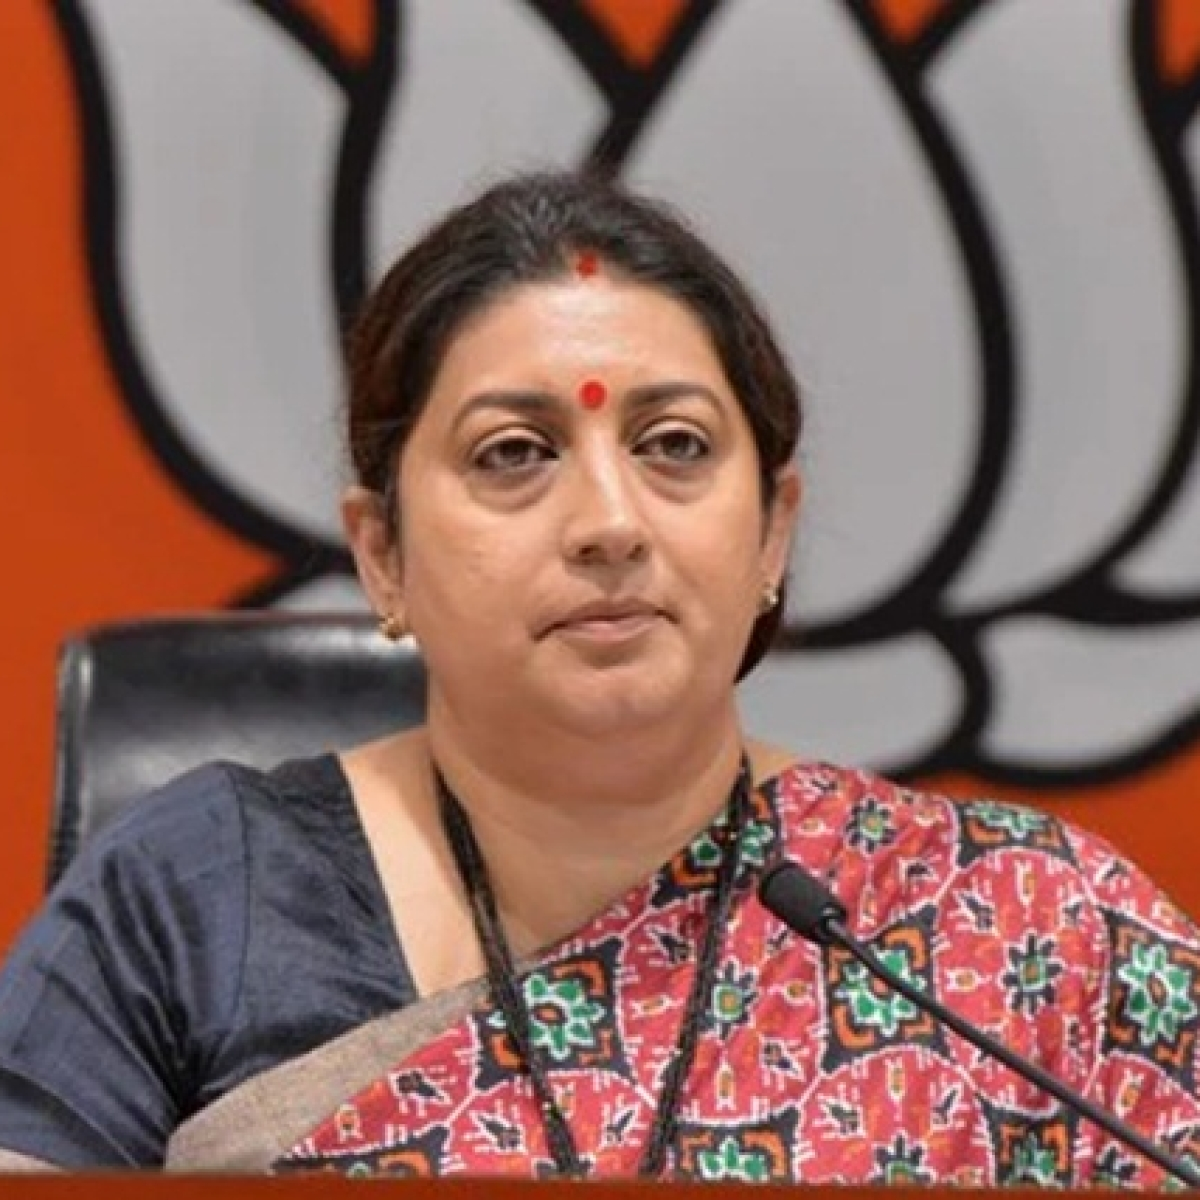 'Is Amethi your mere tour hub?': Posters questioning 'missing MP' Smriti Irani pop up; BJP leader reacts